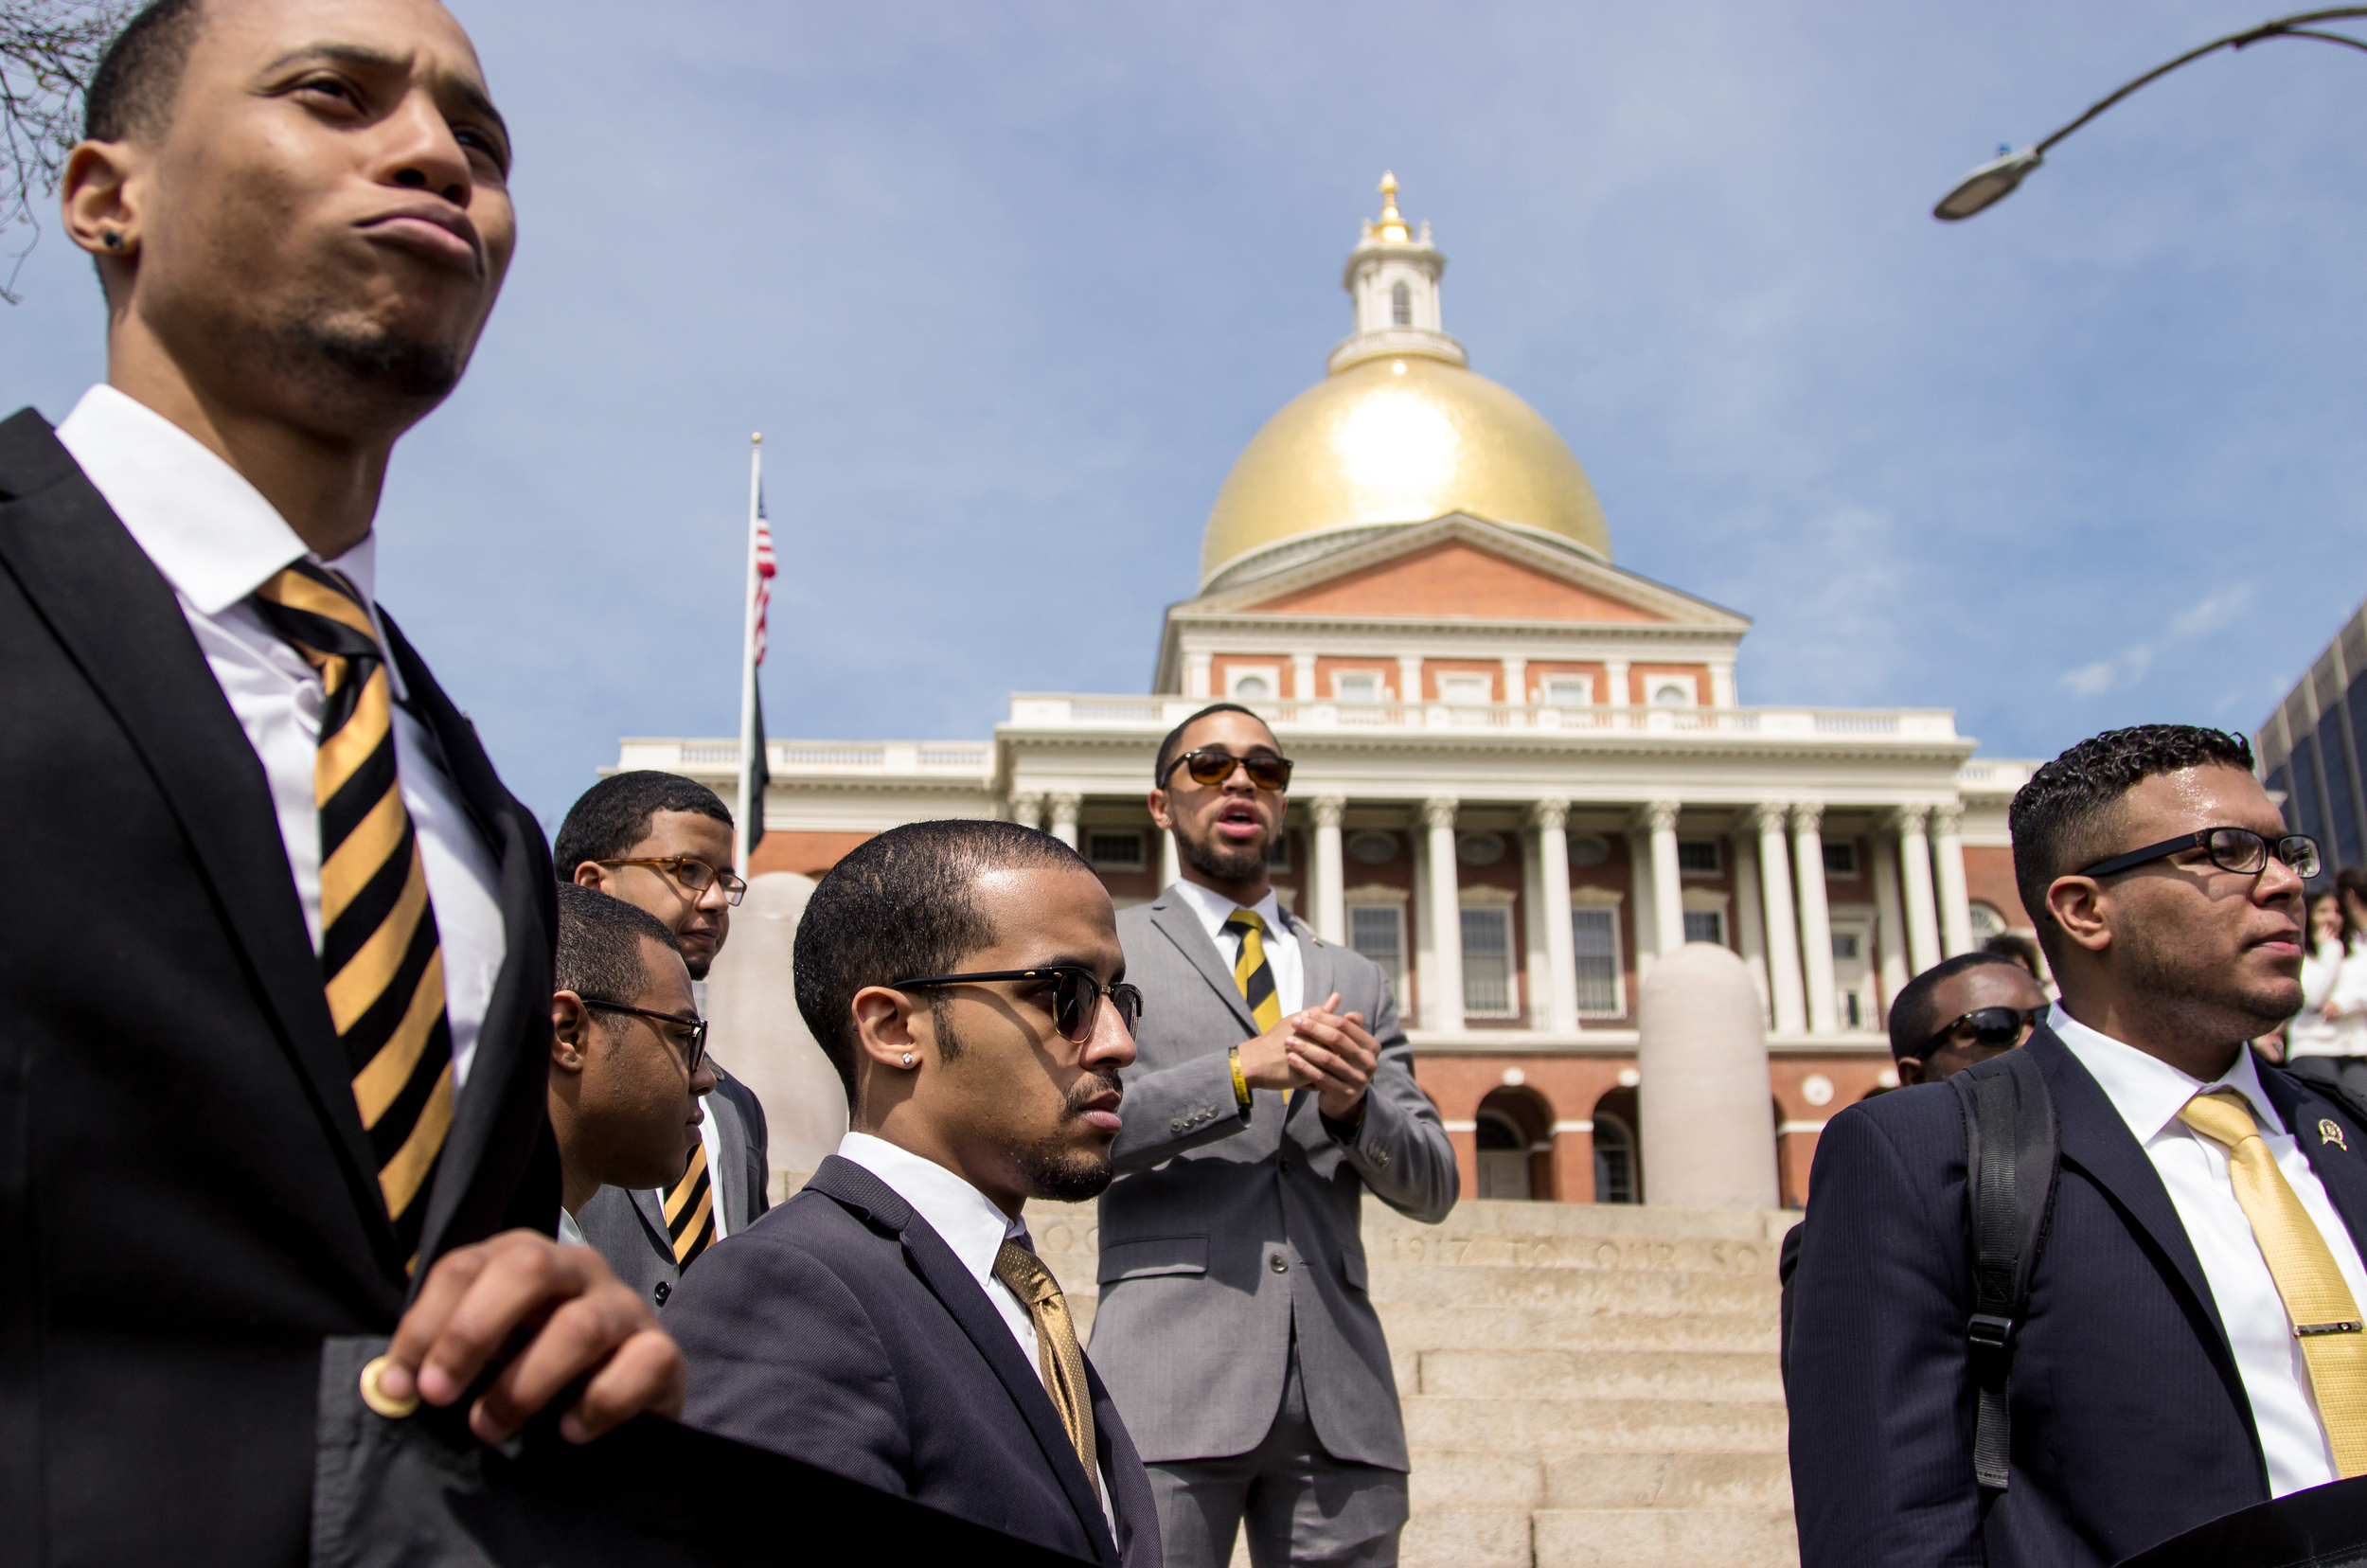 Brothers of the Sigma chapter of Alphi Phi Alpha (from left) William Belt, Yassine El Yousfi, Jamil Williams, and Ricky Rodriguez stand in front of the Massachusetts State House in Boston, Mass., on April 9, 2016, after leading a march from Marsh Plaza to speak out against Donald Trump's ideas and messages.